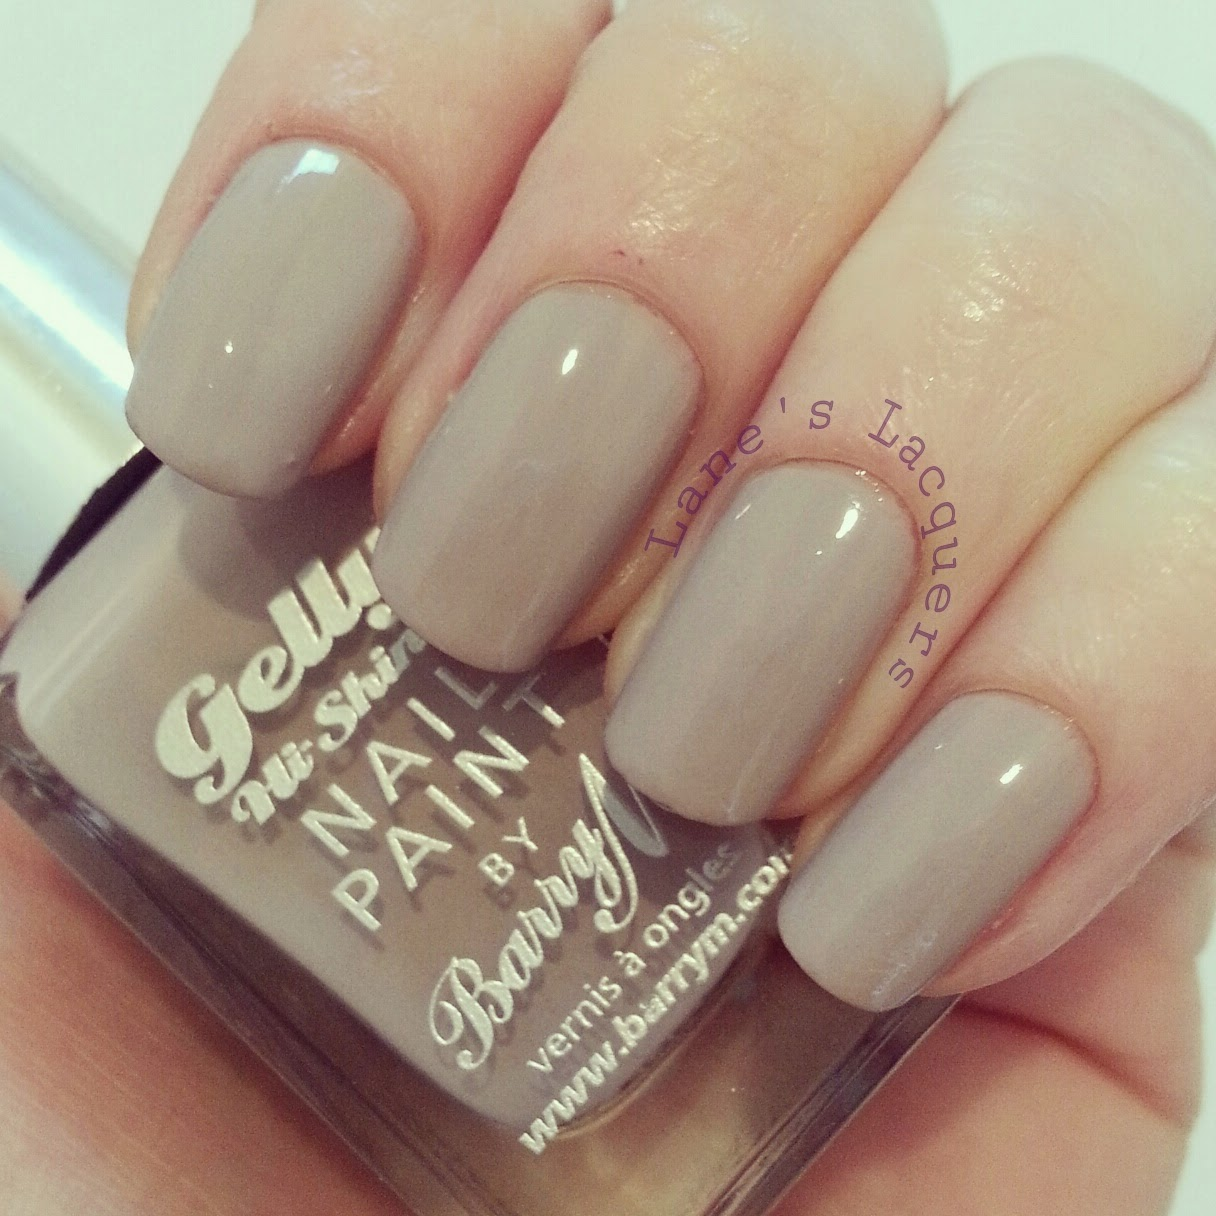 barry-m-summer-gelly-almond-swatch-nails